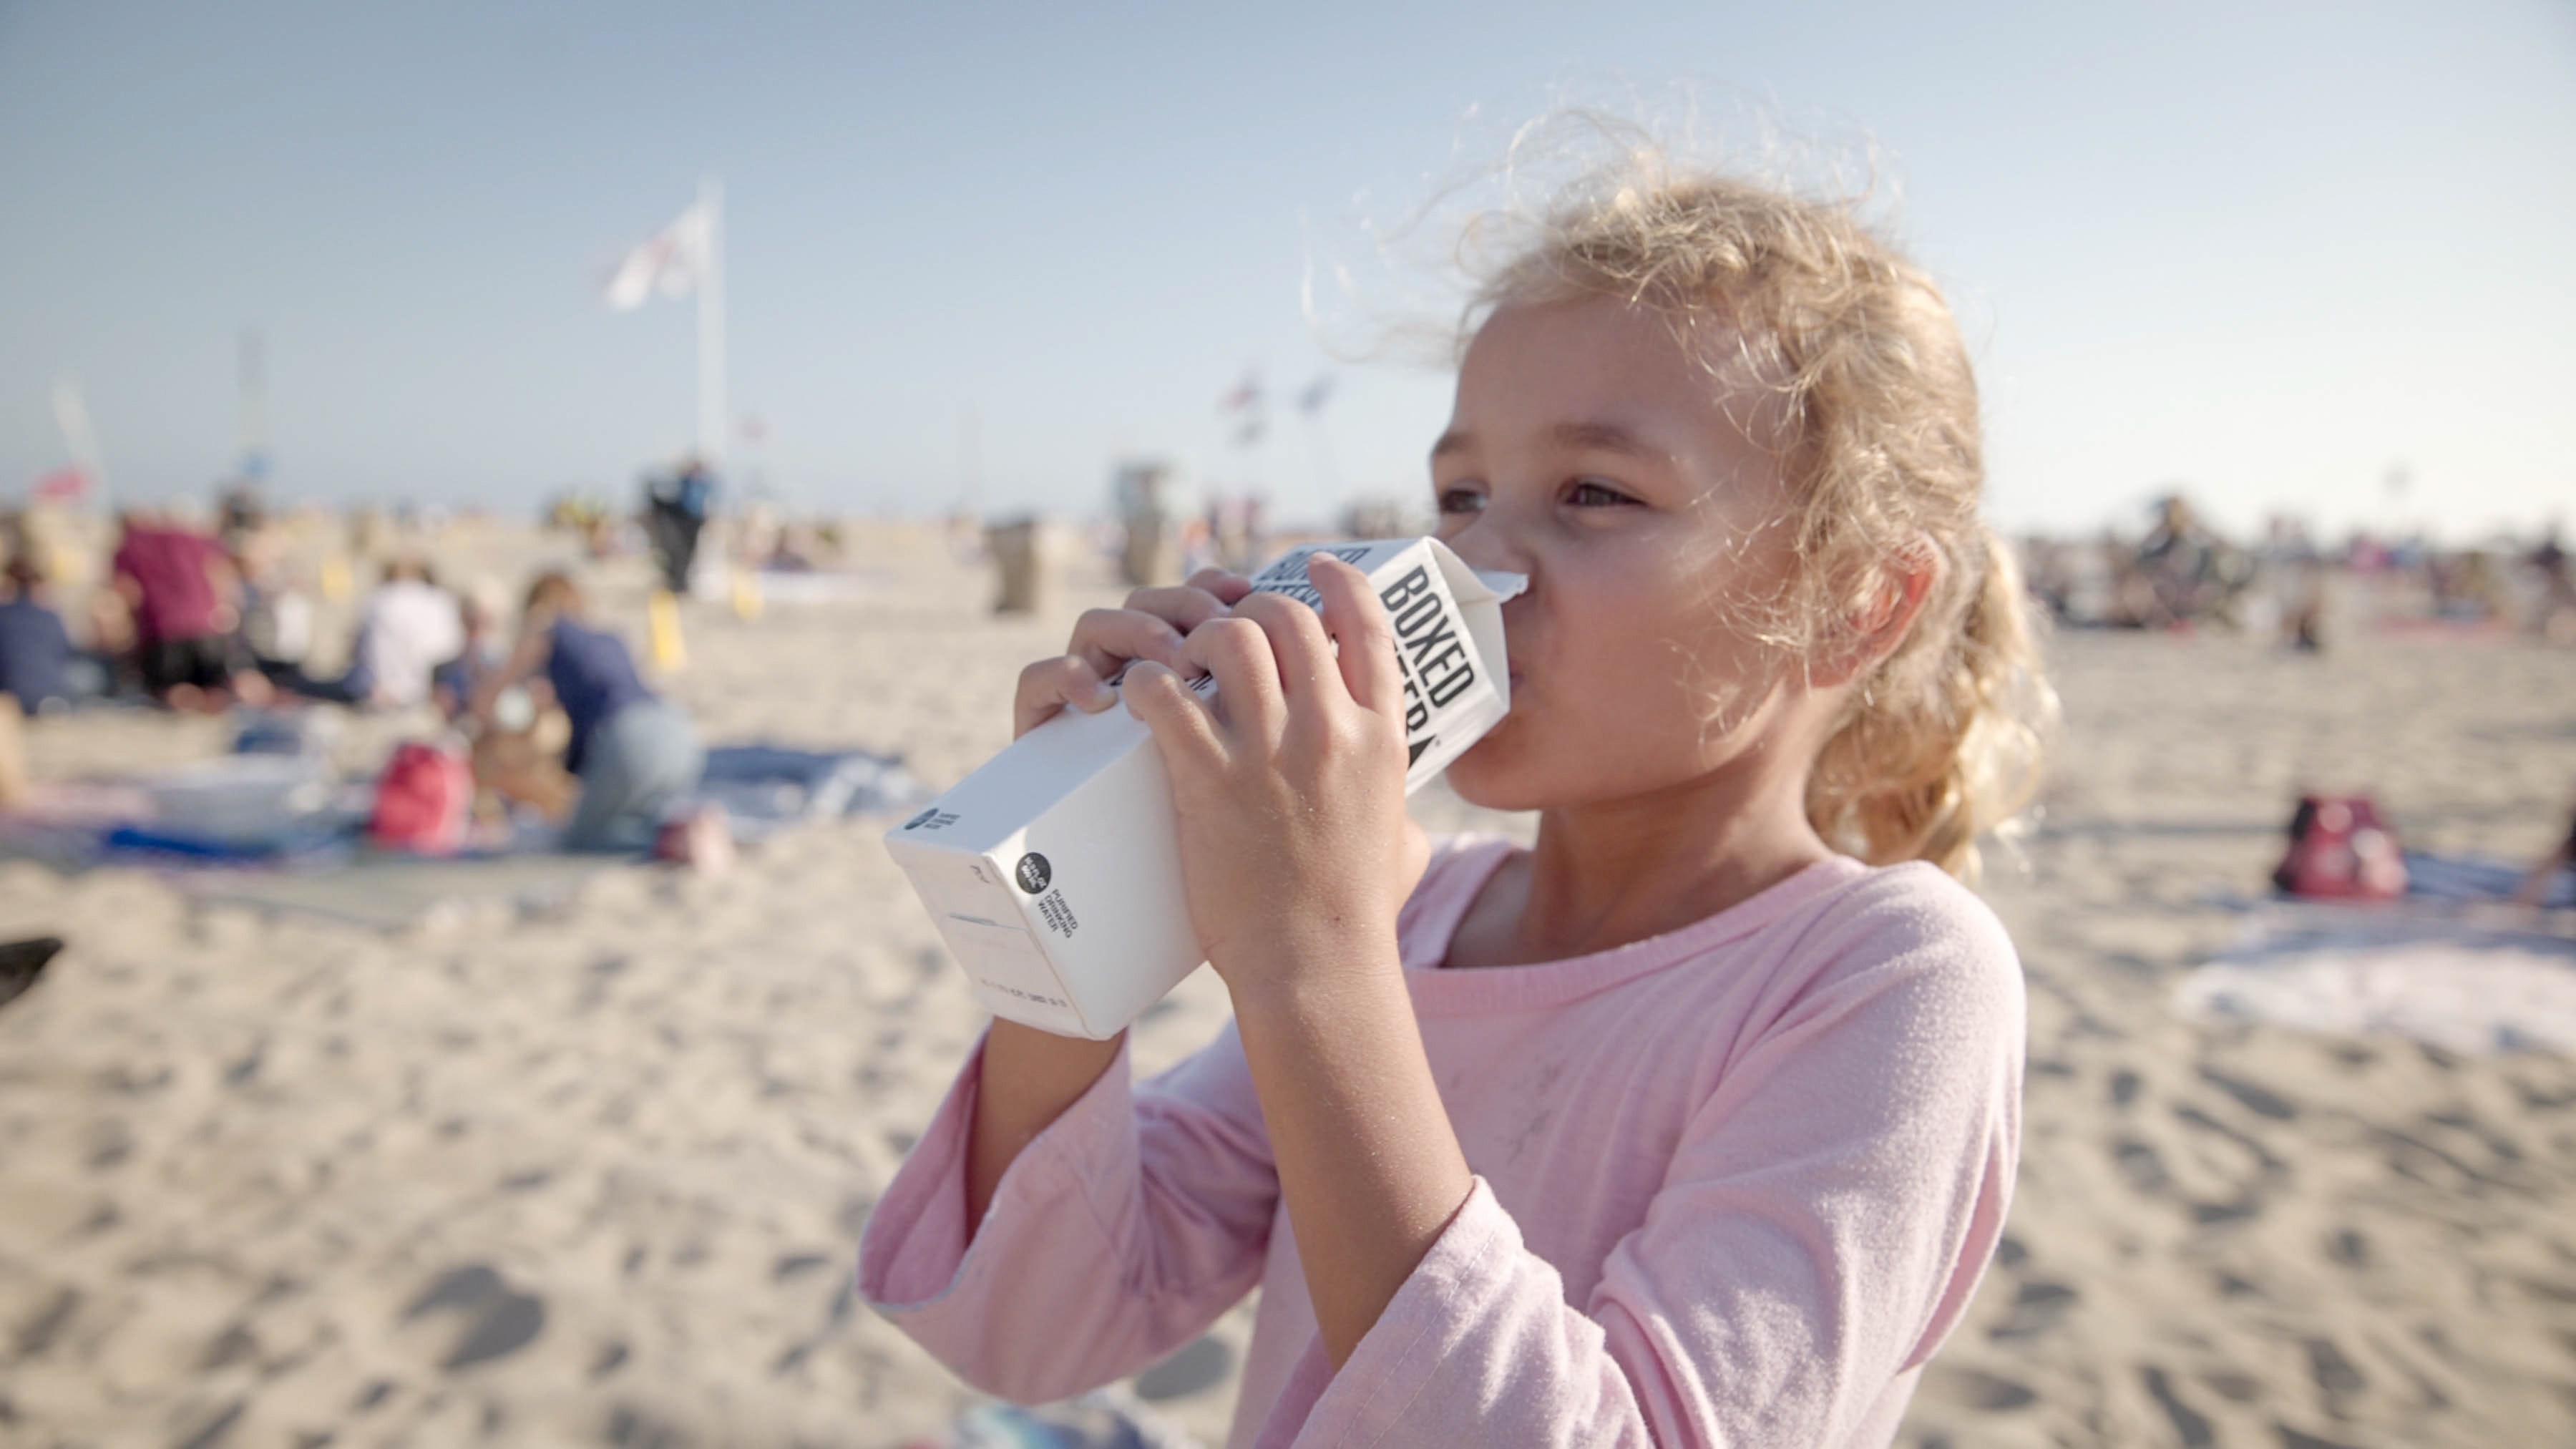 A girl drinking a carton of Boxed Water on the beach